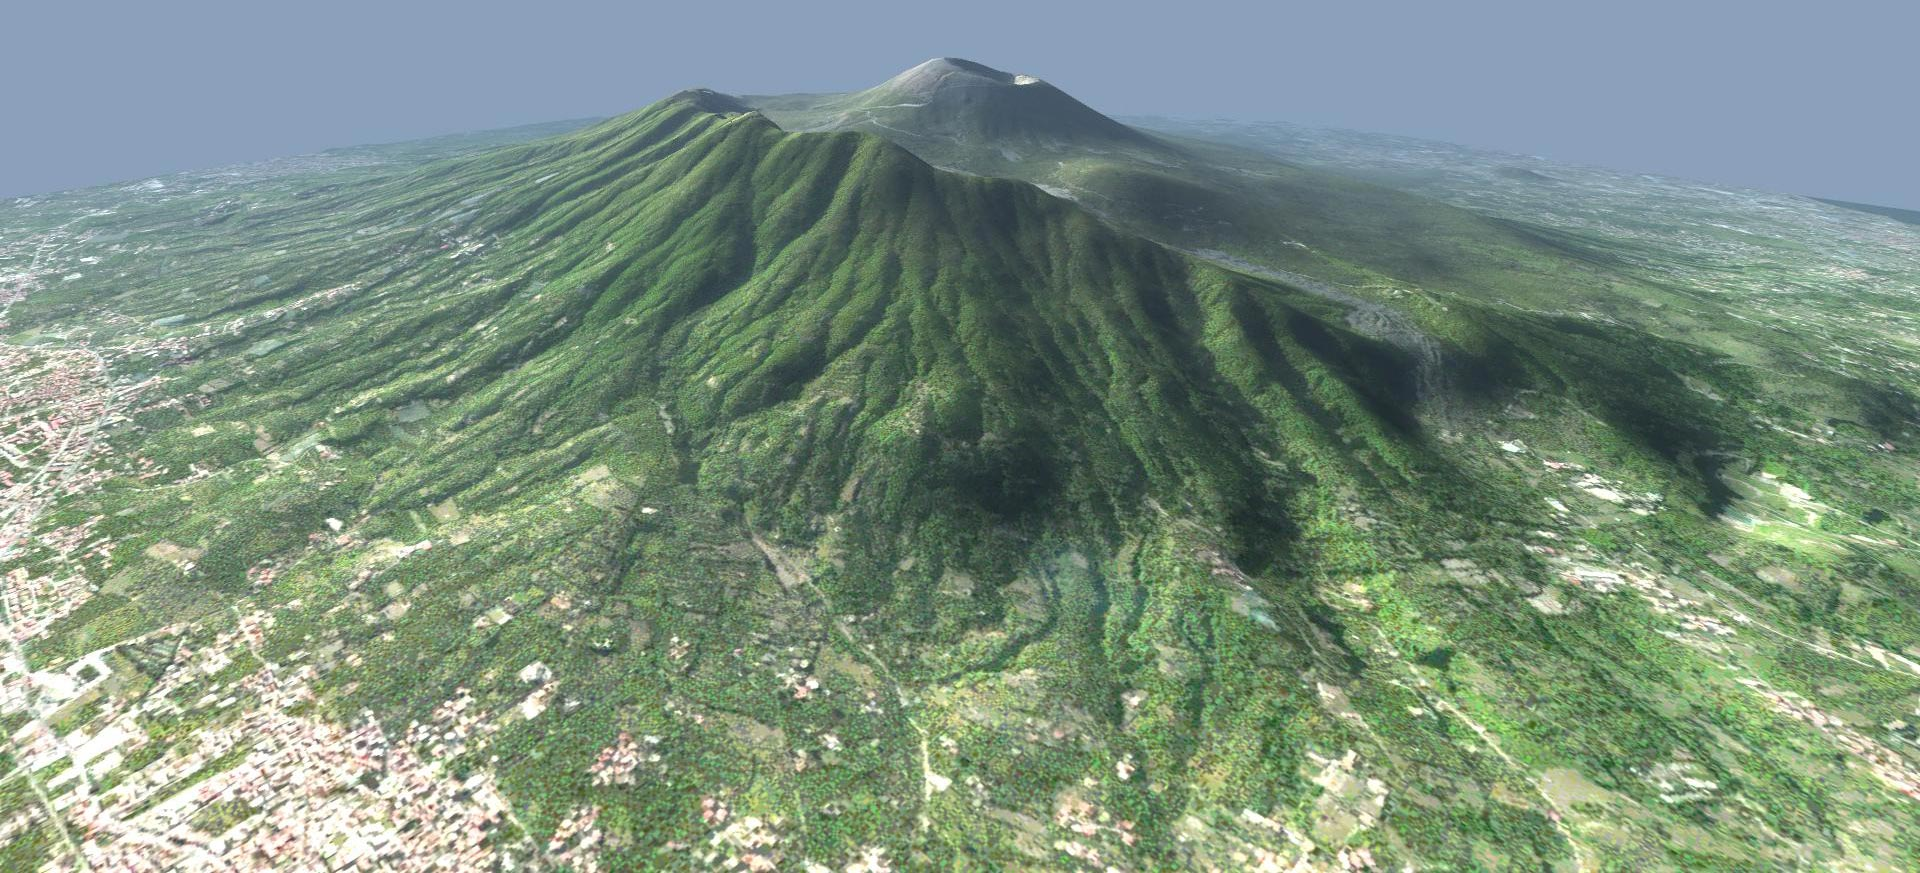 TerraLand Photorealistic Terrains From Heightmaps Satellite